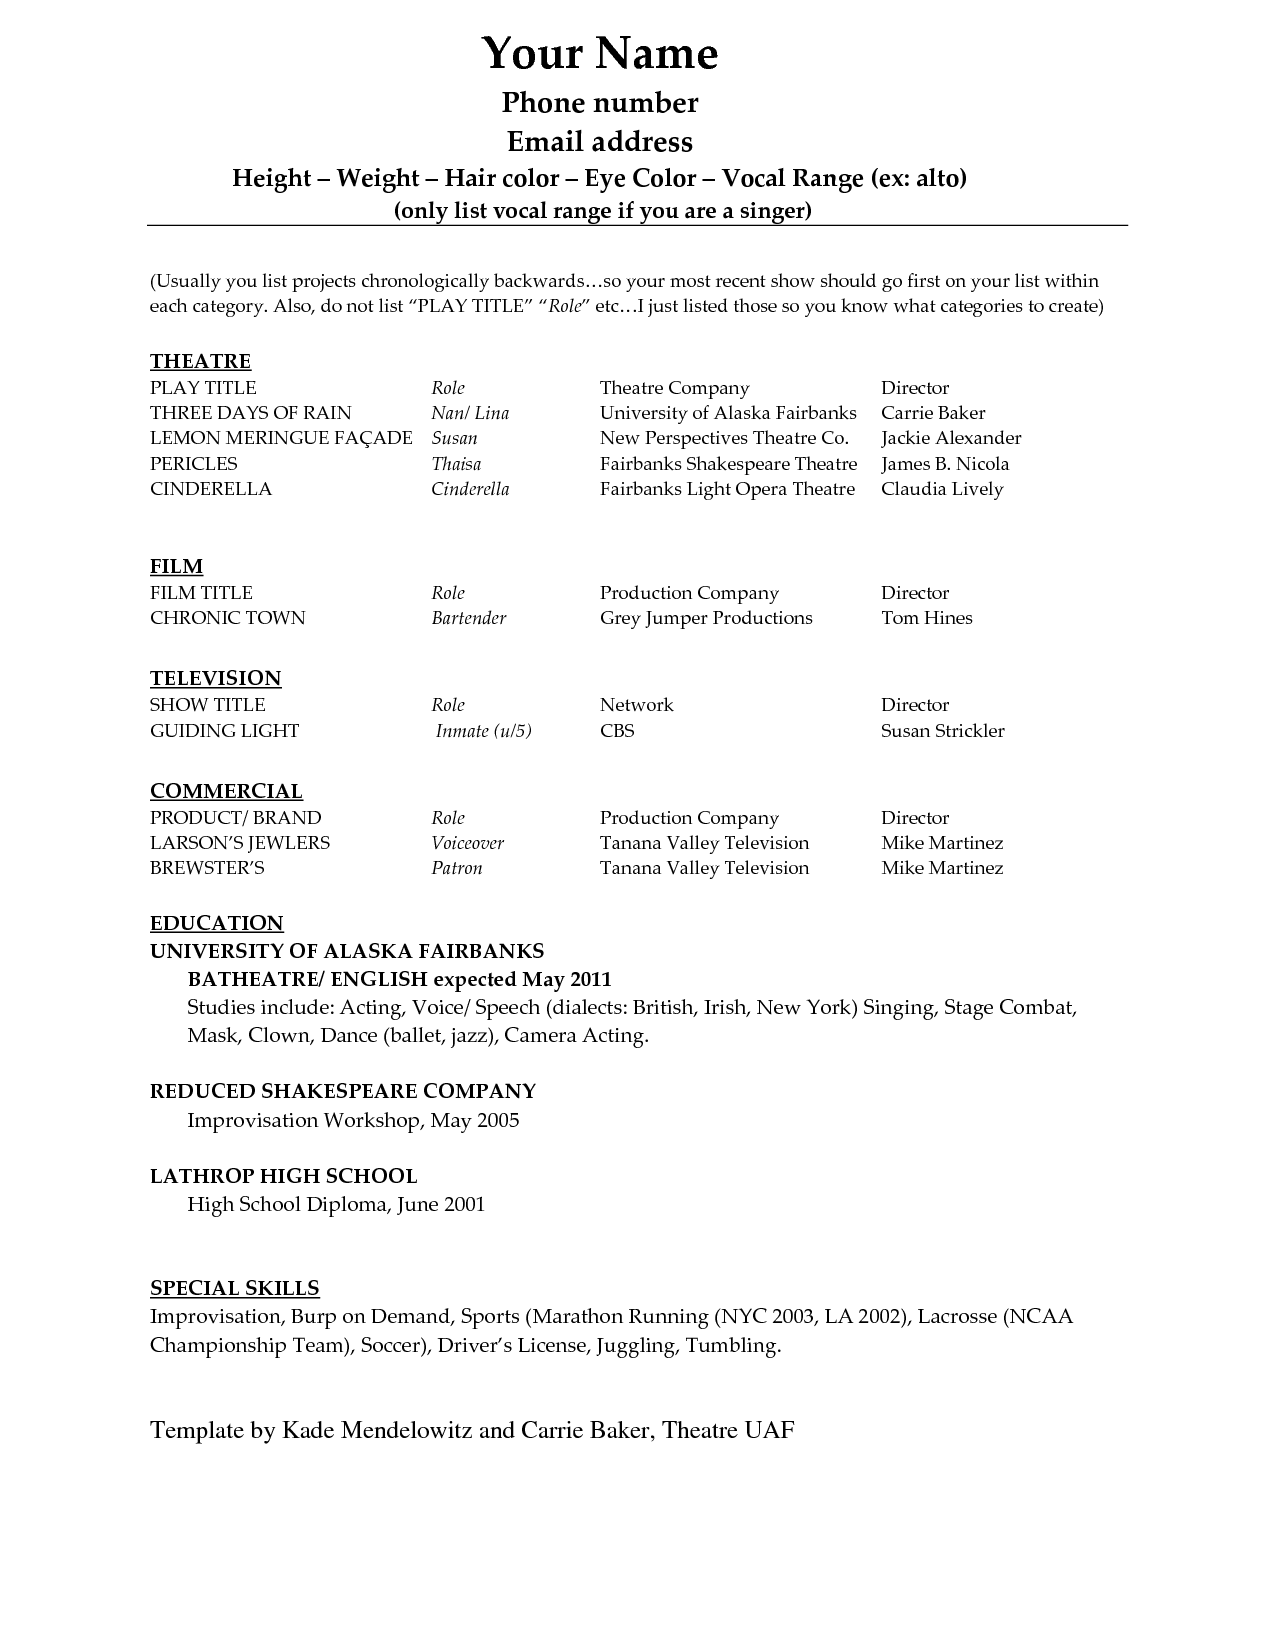 Acting Resume Template Download Free - http://www.resumecareer ...